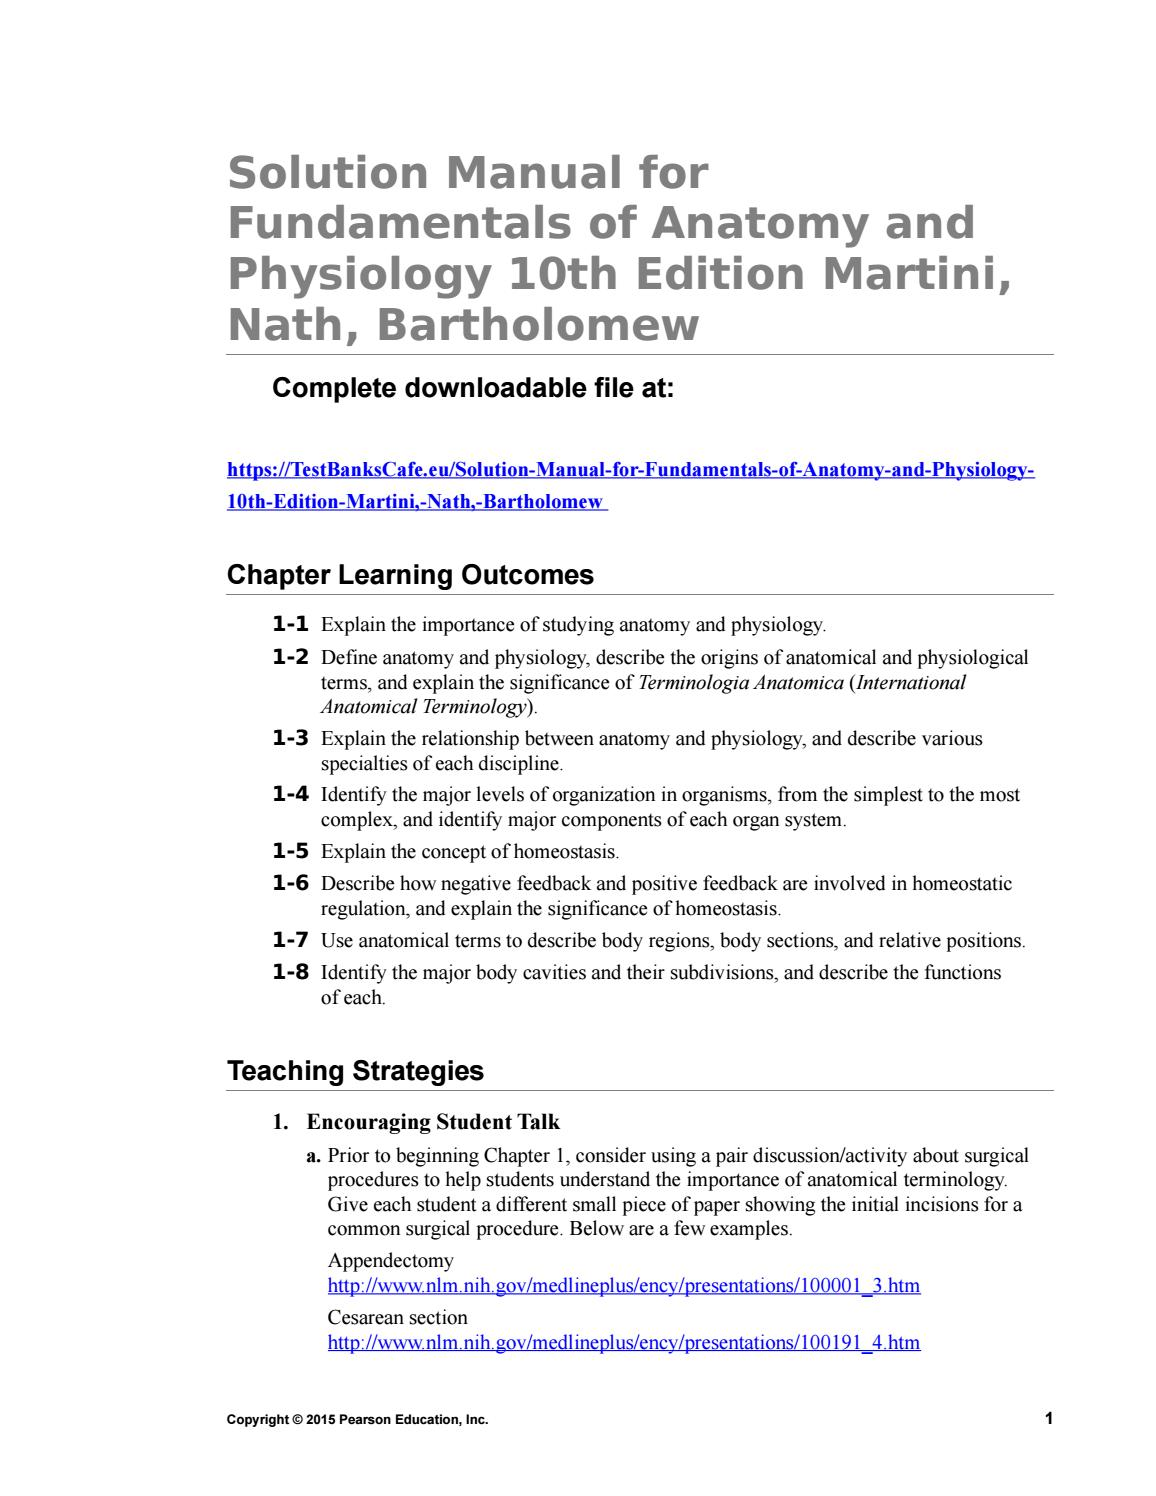 Solution Manual for Fundamentals of Anatomy and Physiology 10th ...